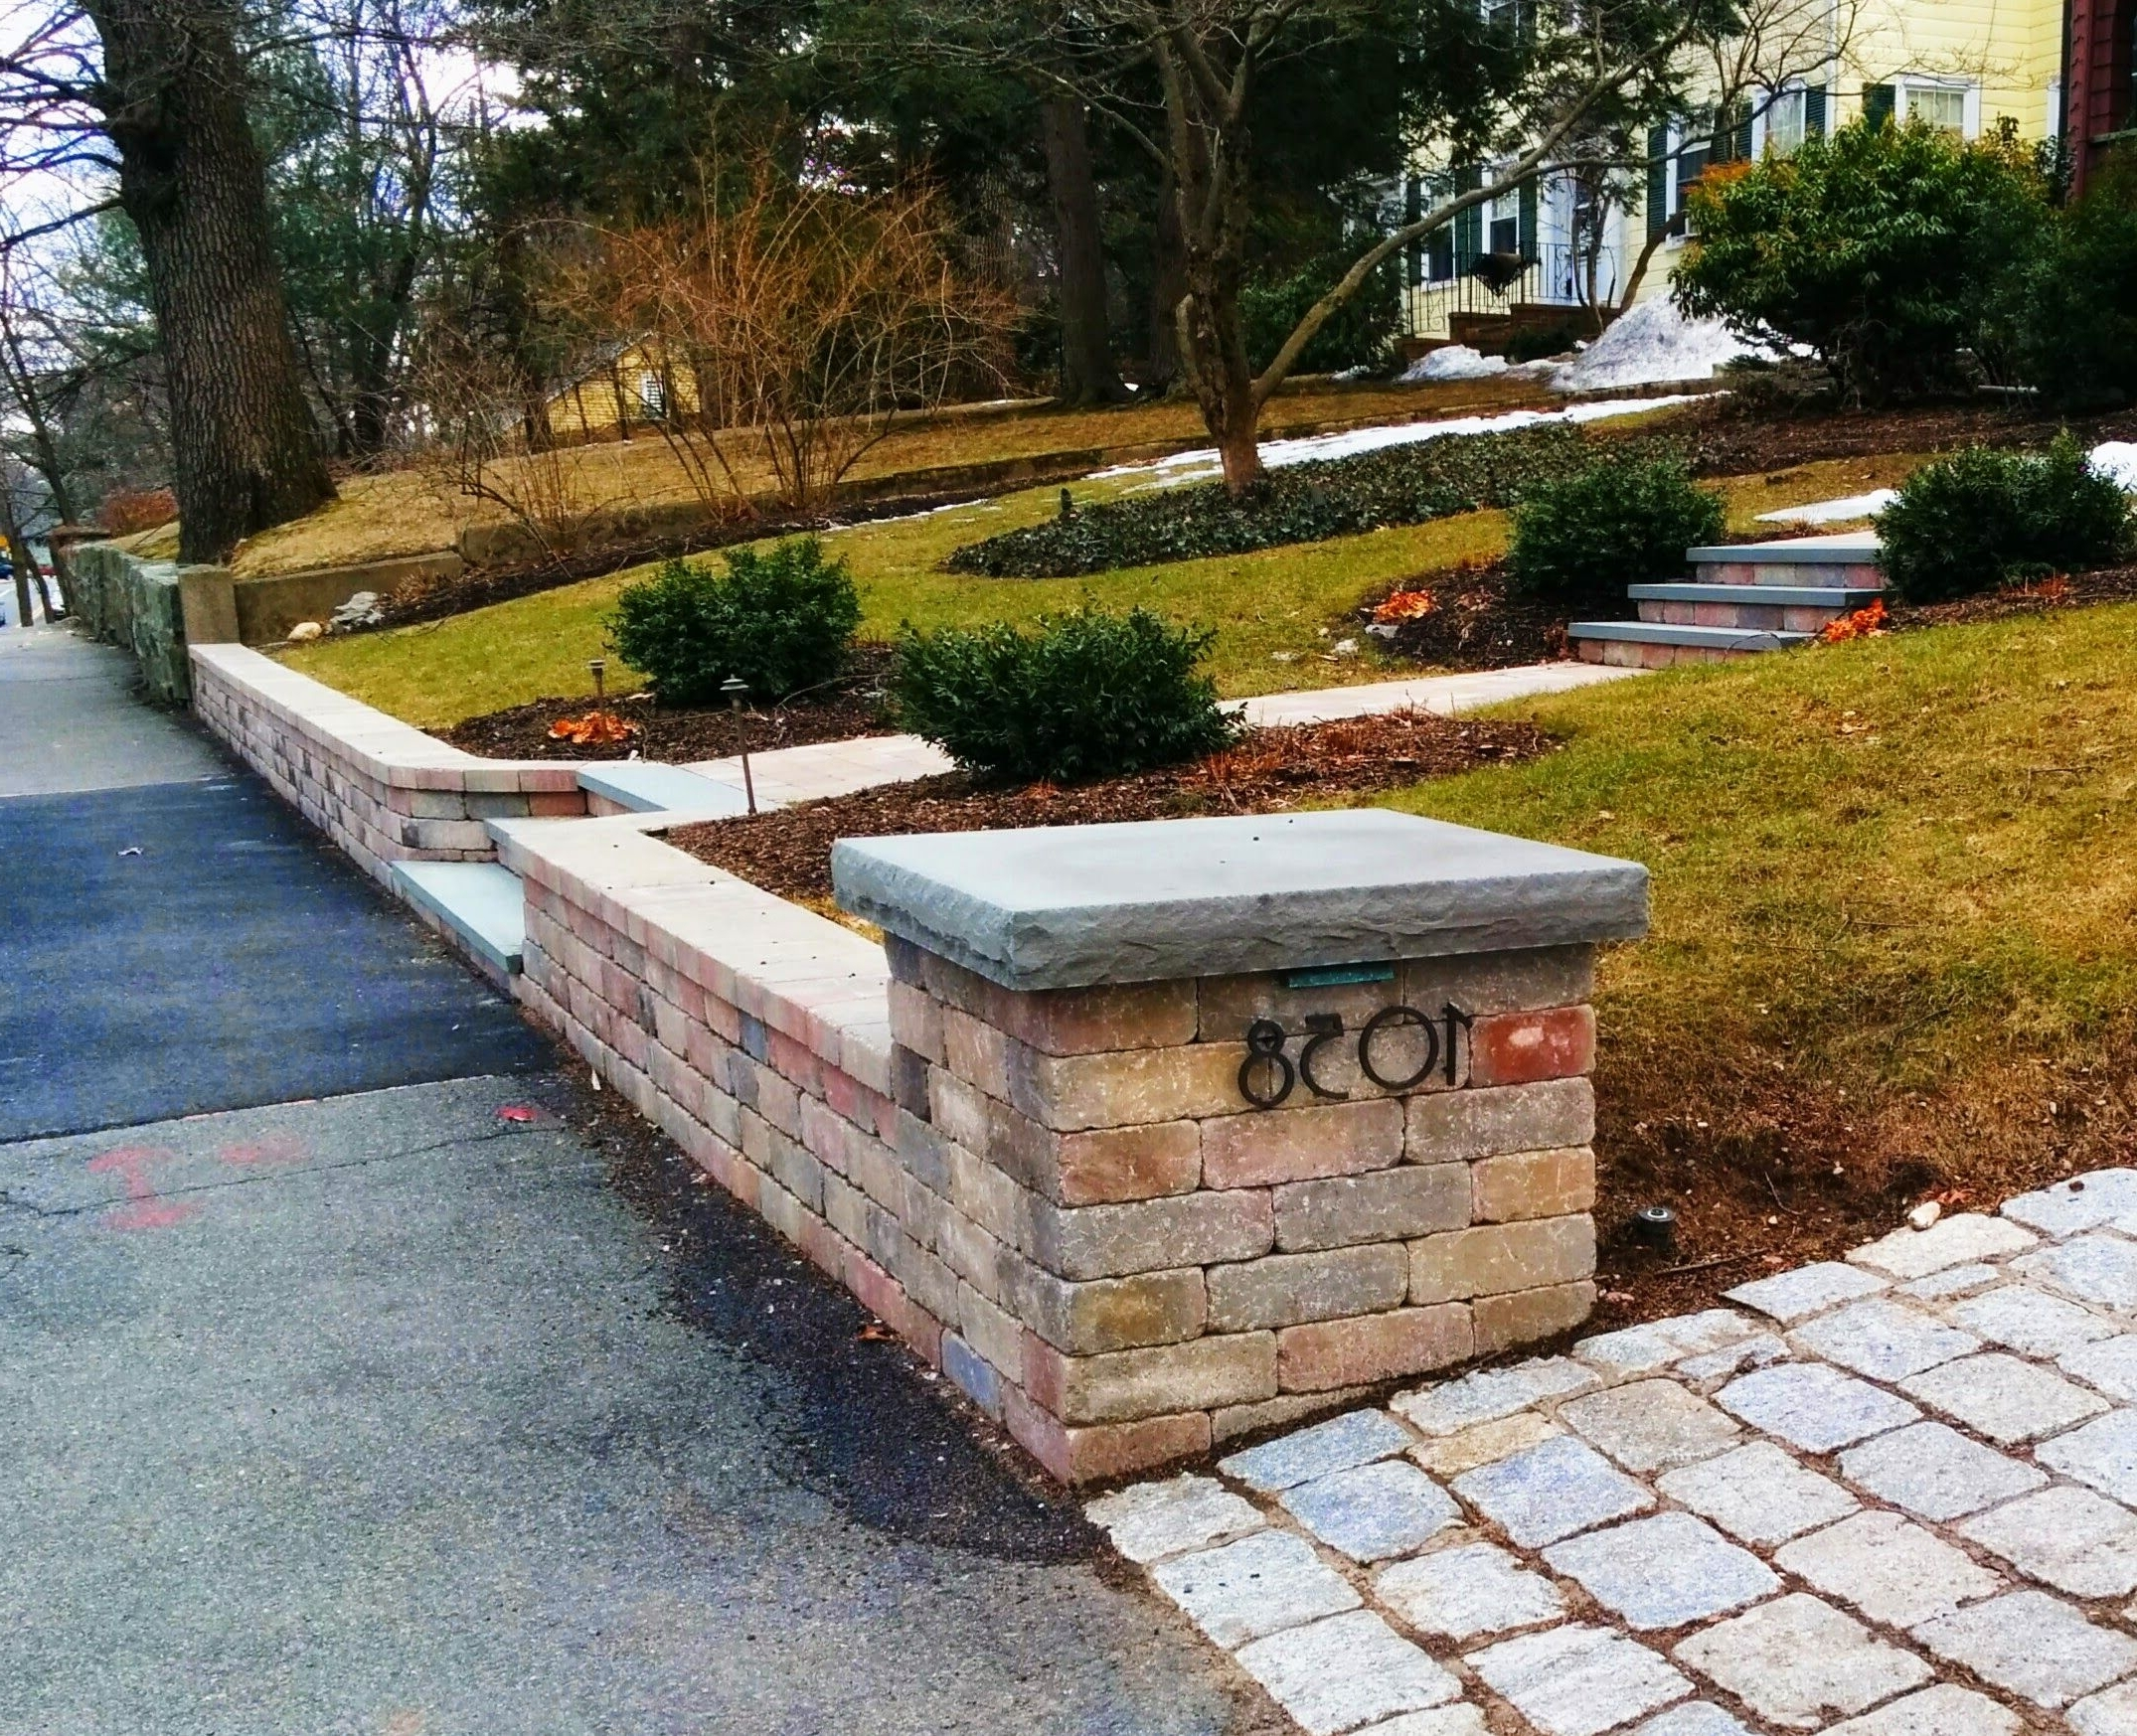 Widely Used Segmental Concrete Block Retaining Wall, Pillars, And Steps With Within Outdoor Block Wall Lighting (View 20 of 20)